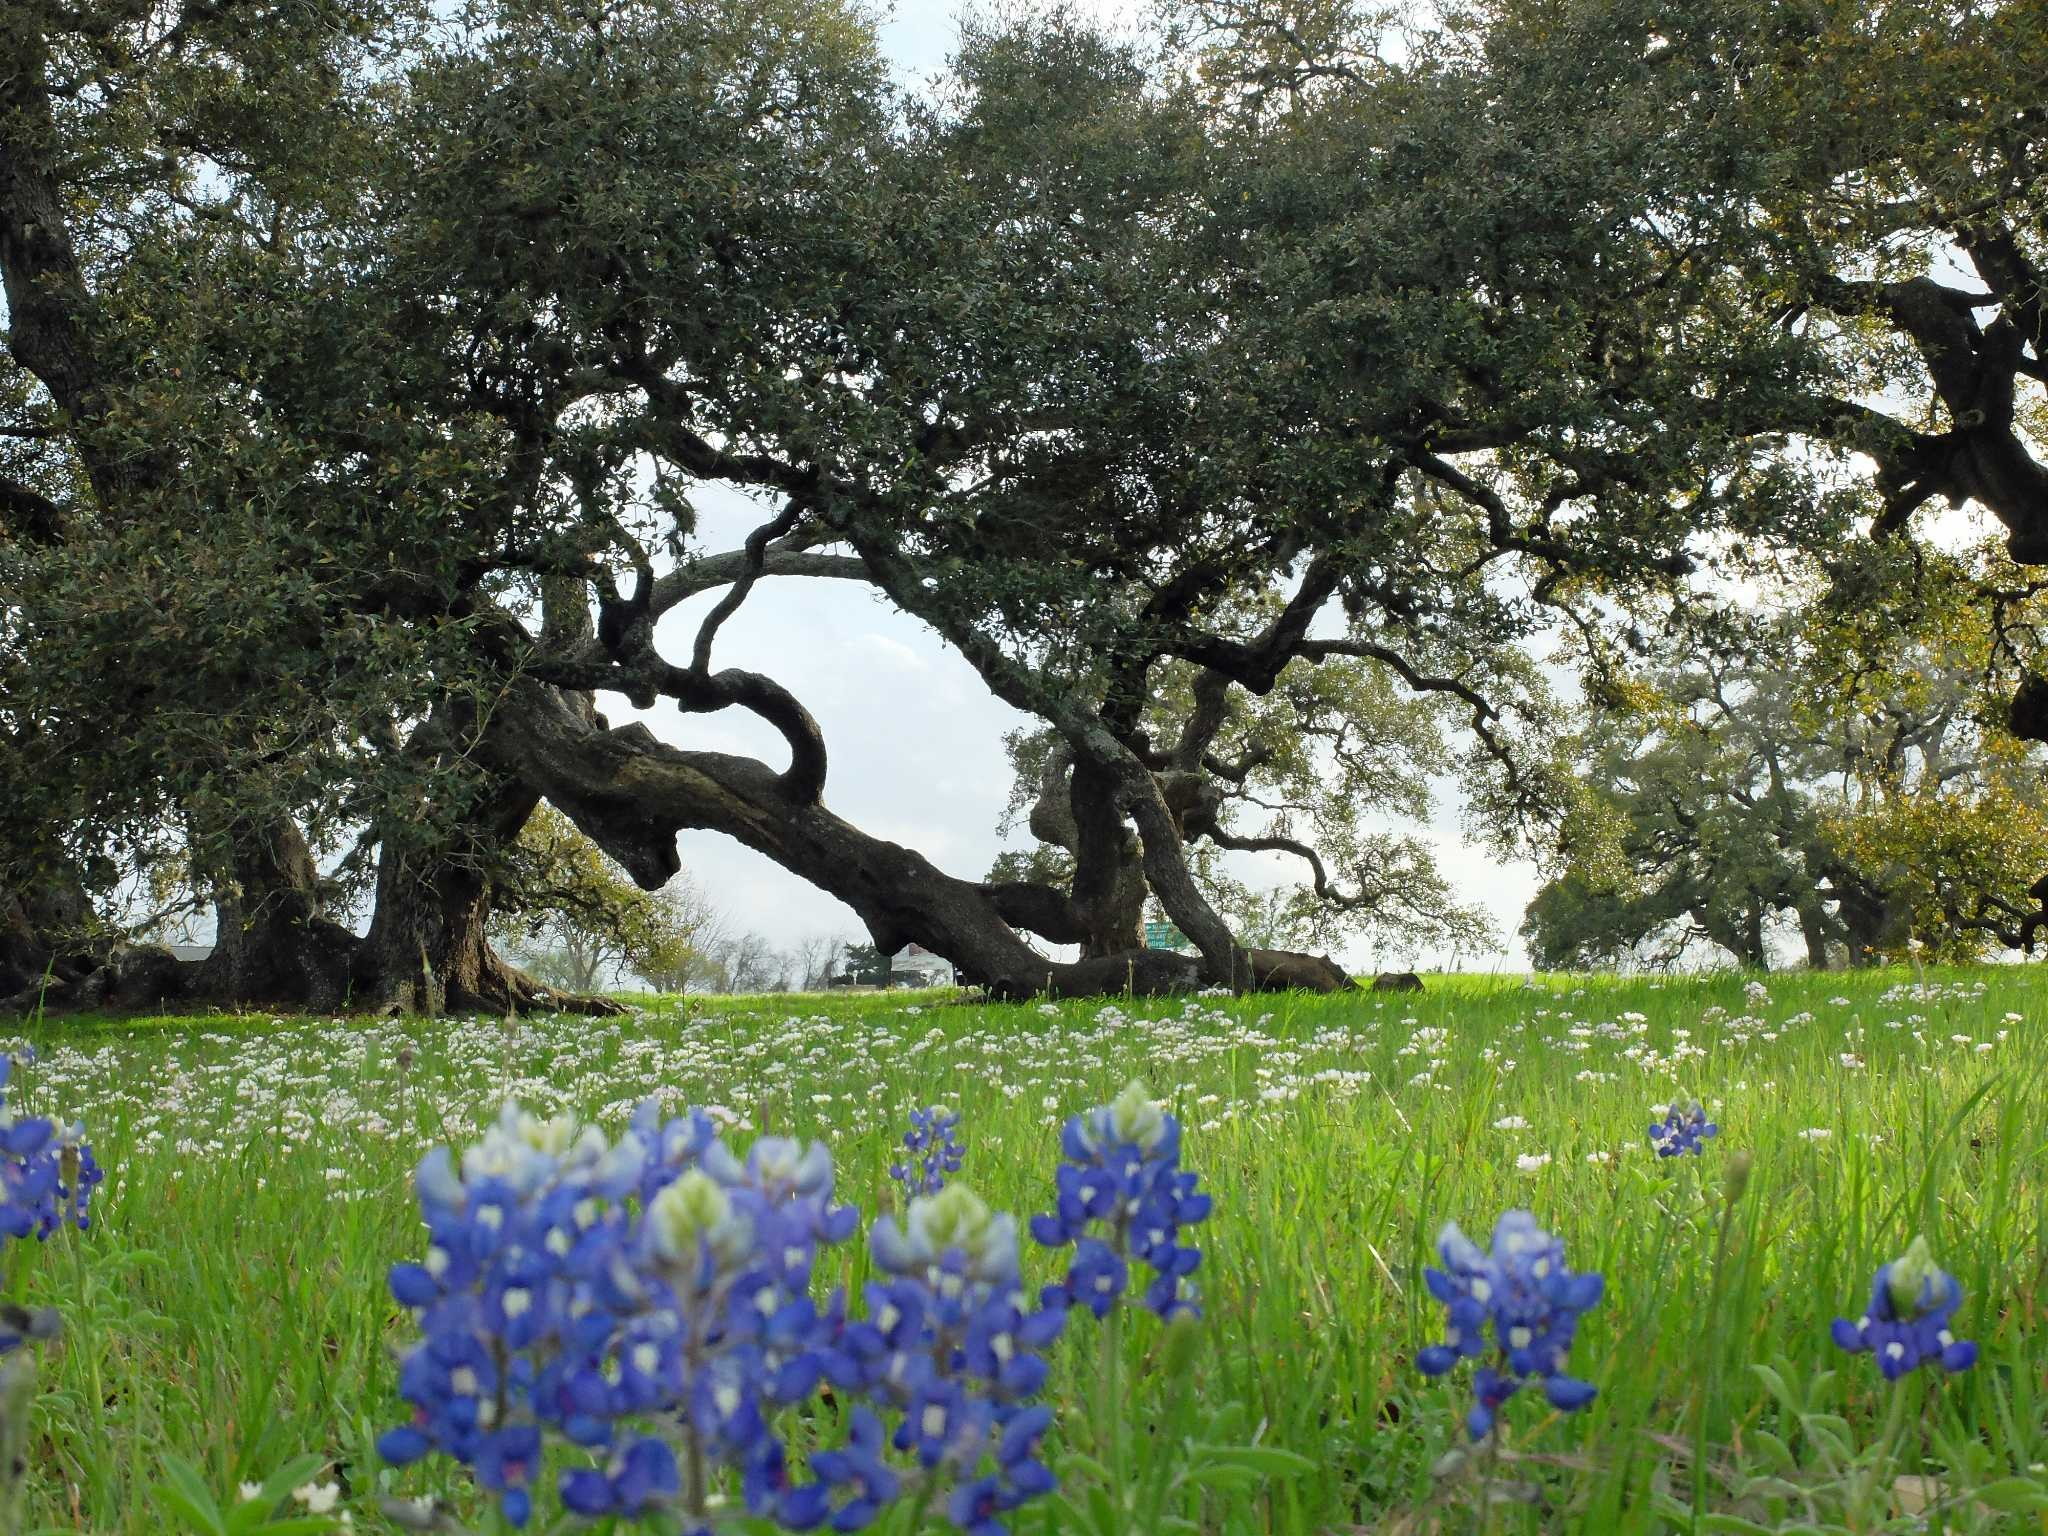 Res: 2048x1536, Thanks to a warm winter, flowering plants are blooming ahead of schedule -  Houston Chronicle